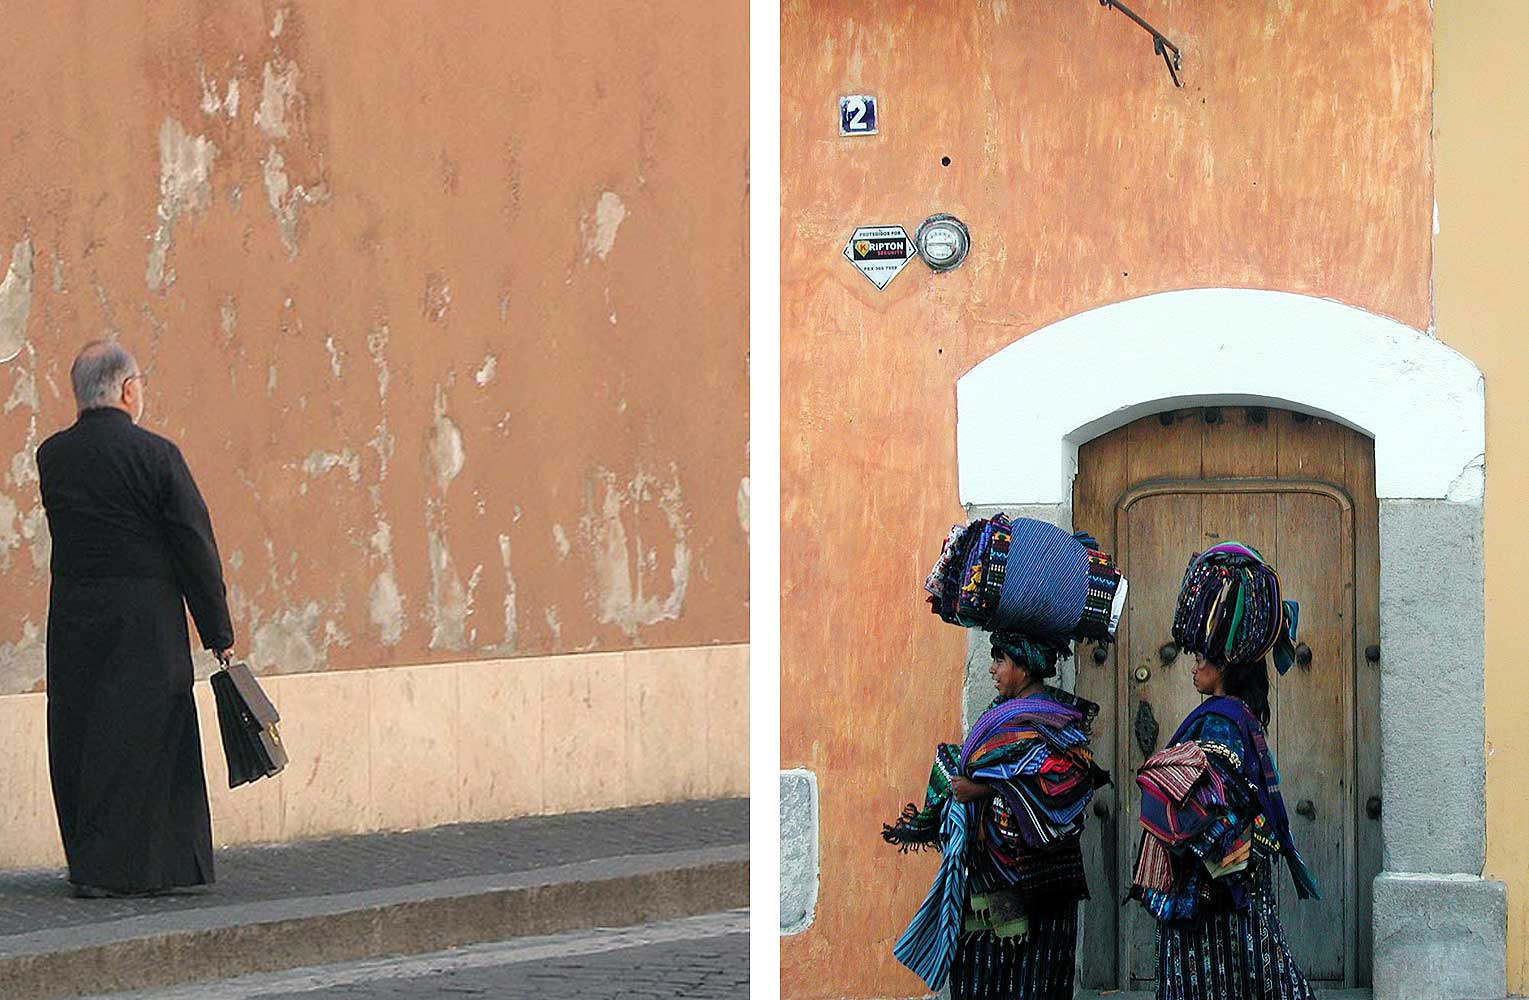 Left: Vatican City, 3 Oct. 2009. Right: Antigua, Guatemala, 4 Jan., 2002.